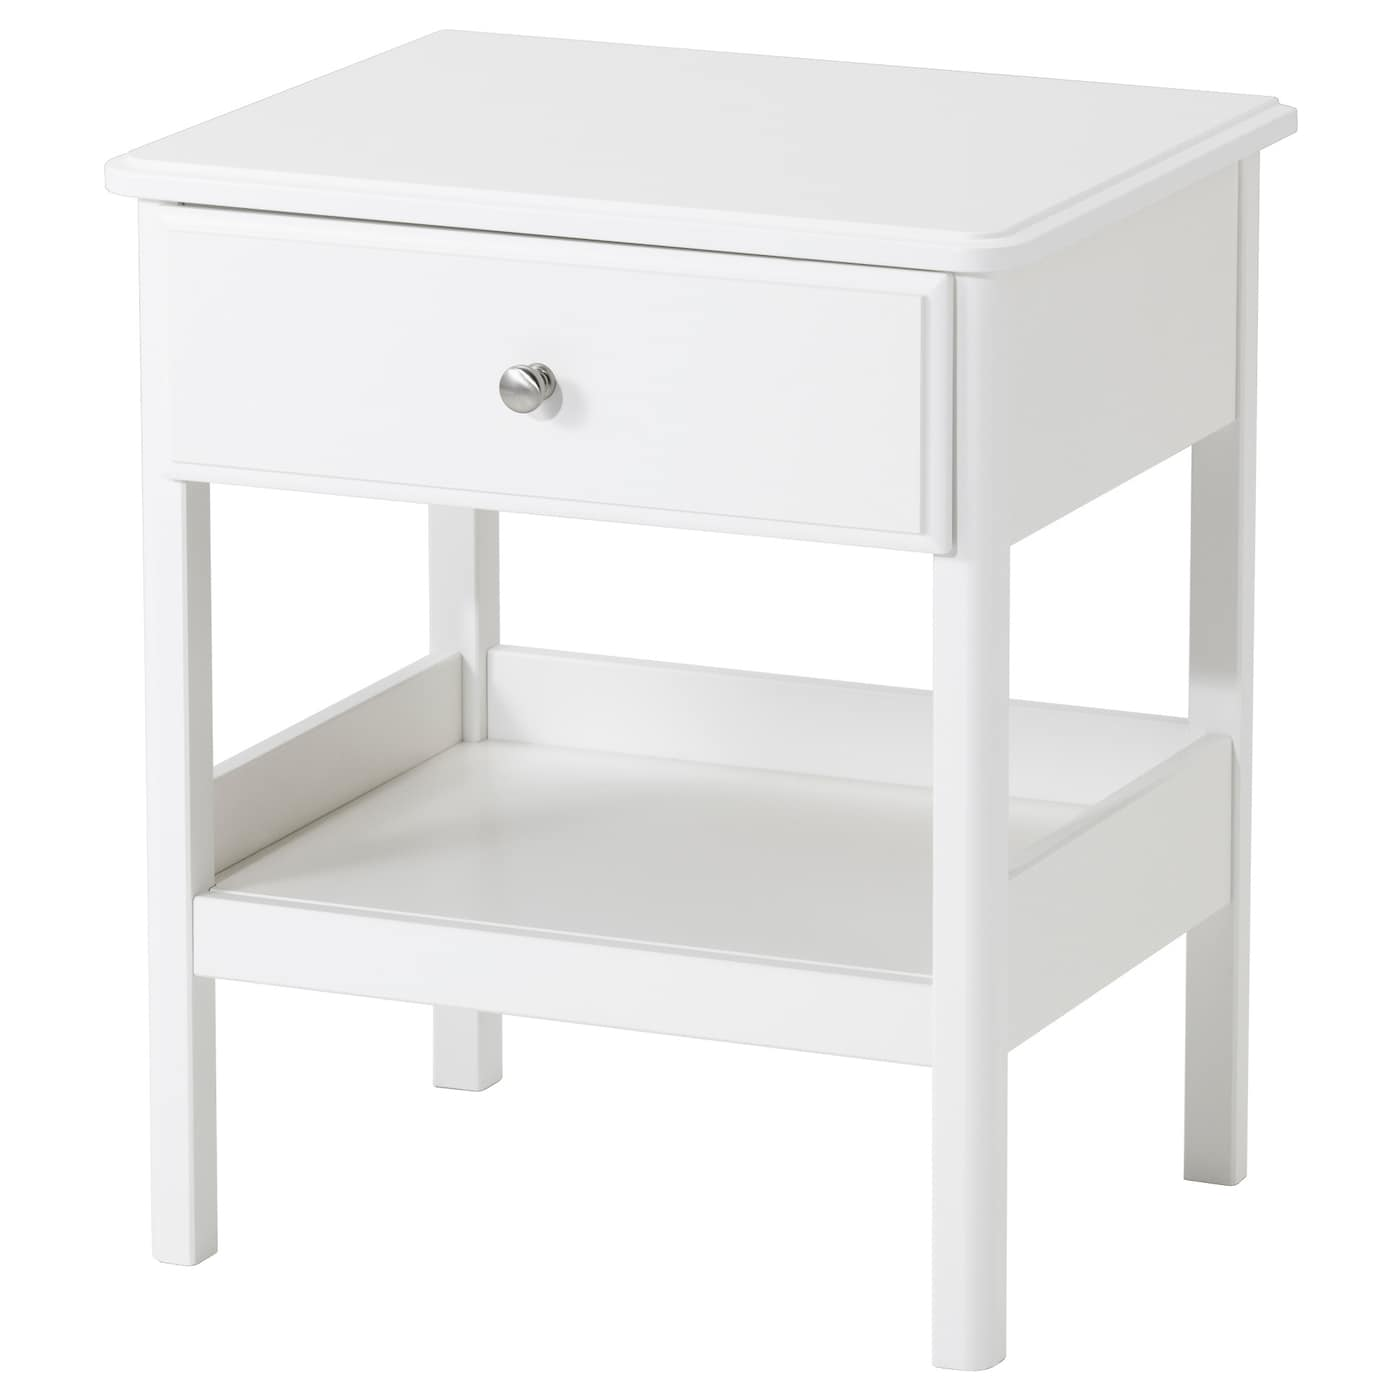 Tyssedal bedside table white 51x40 cm ikea for Table blanche ikea